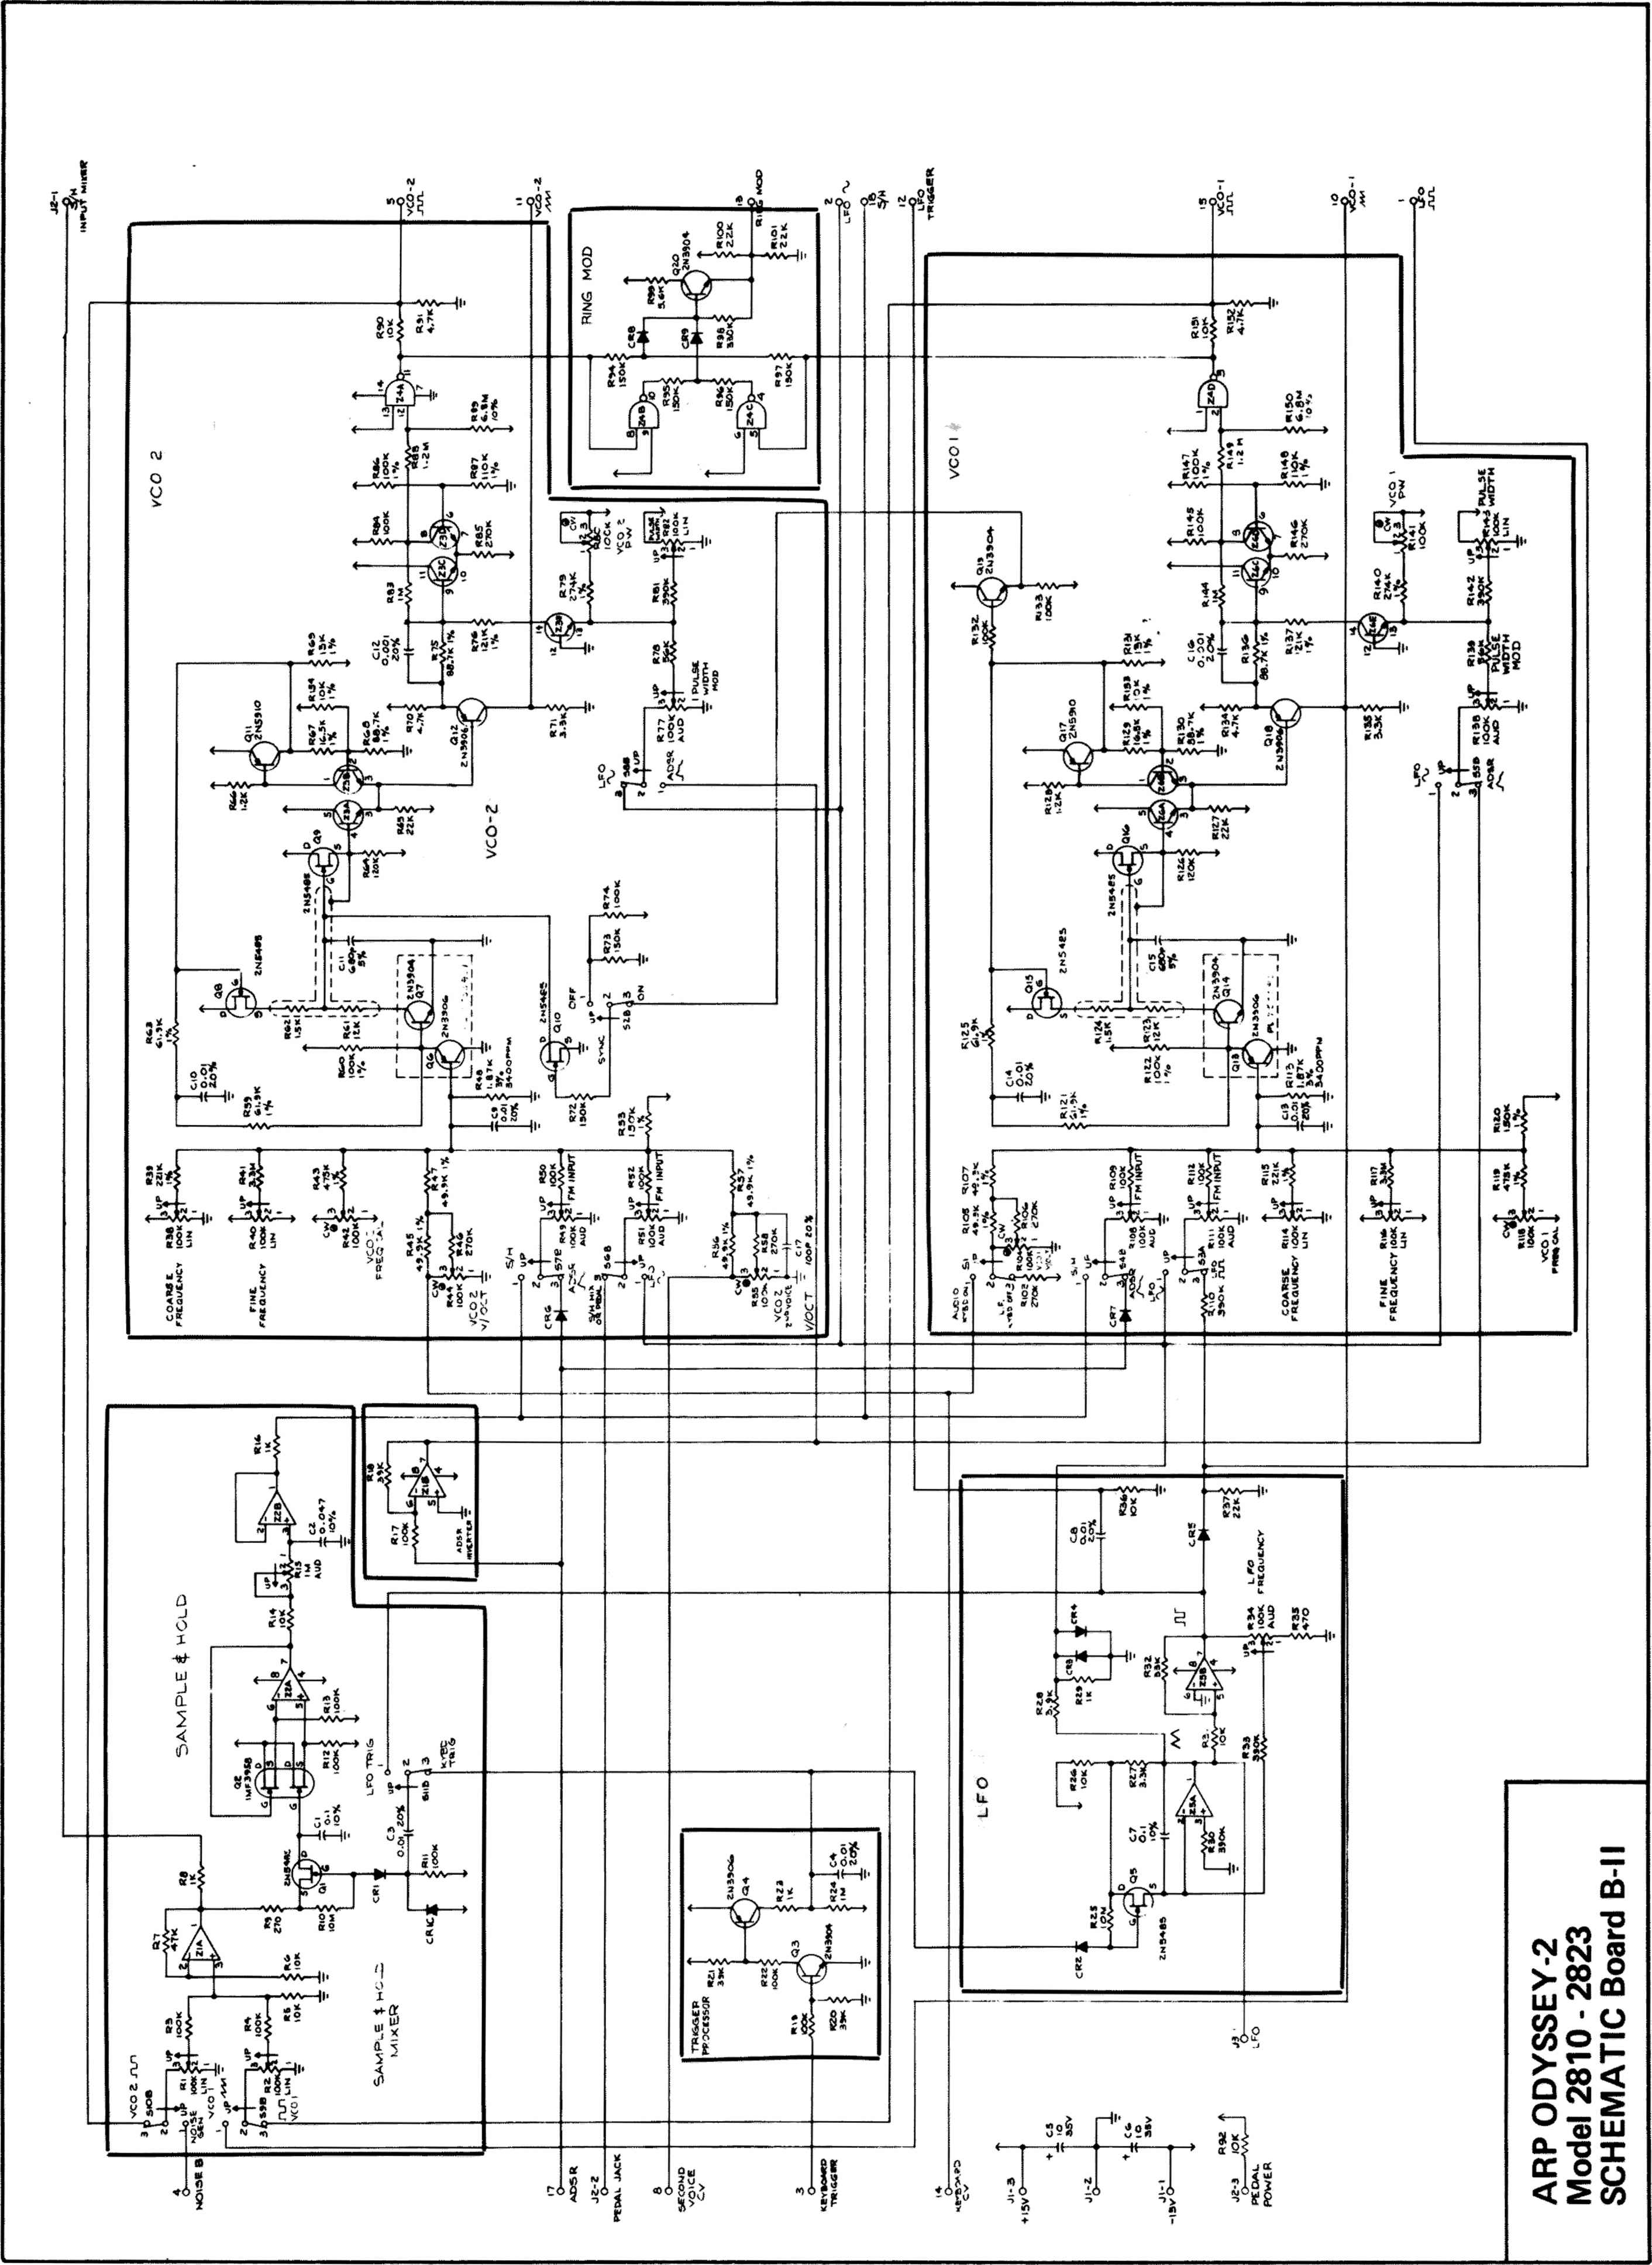 Arp Odyssey Model Schematic Board Bl